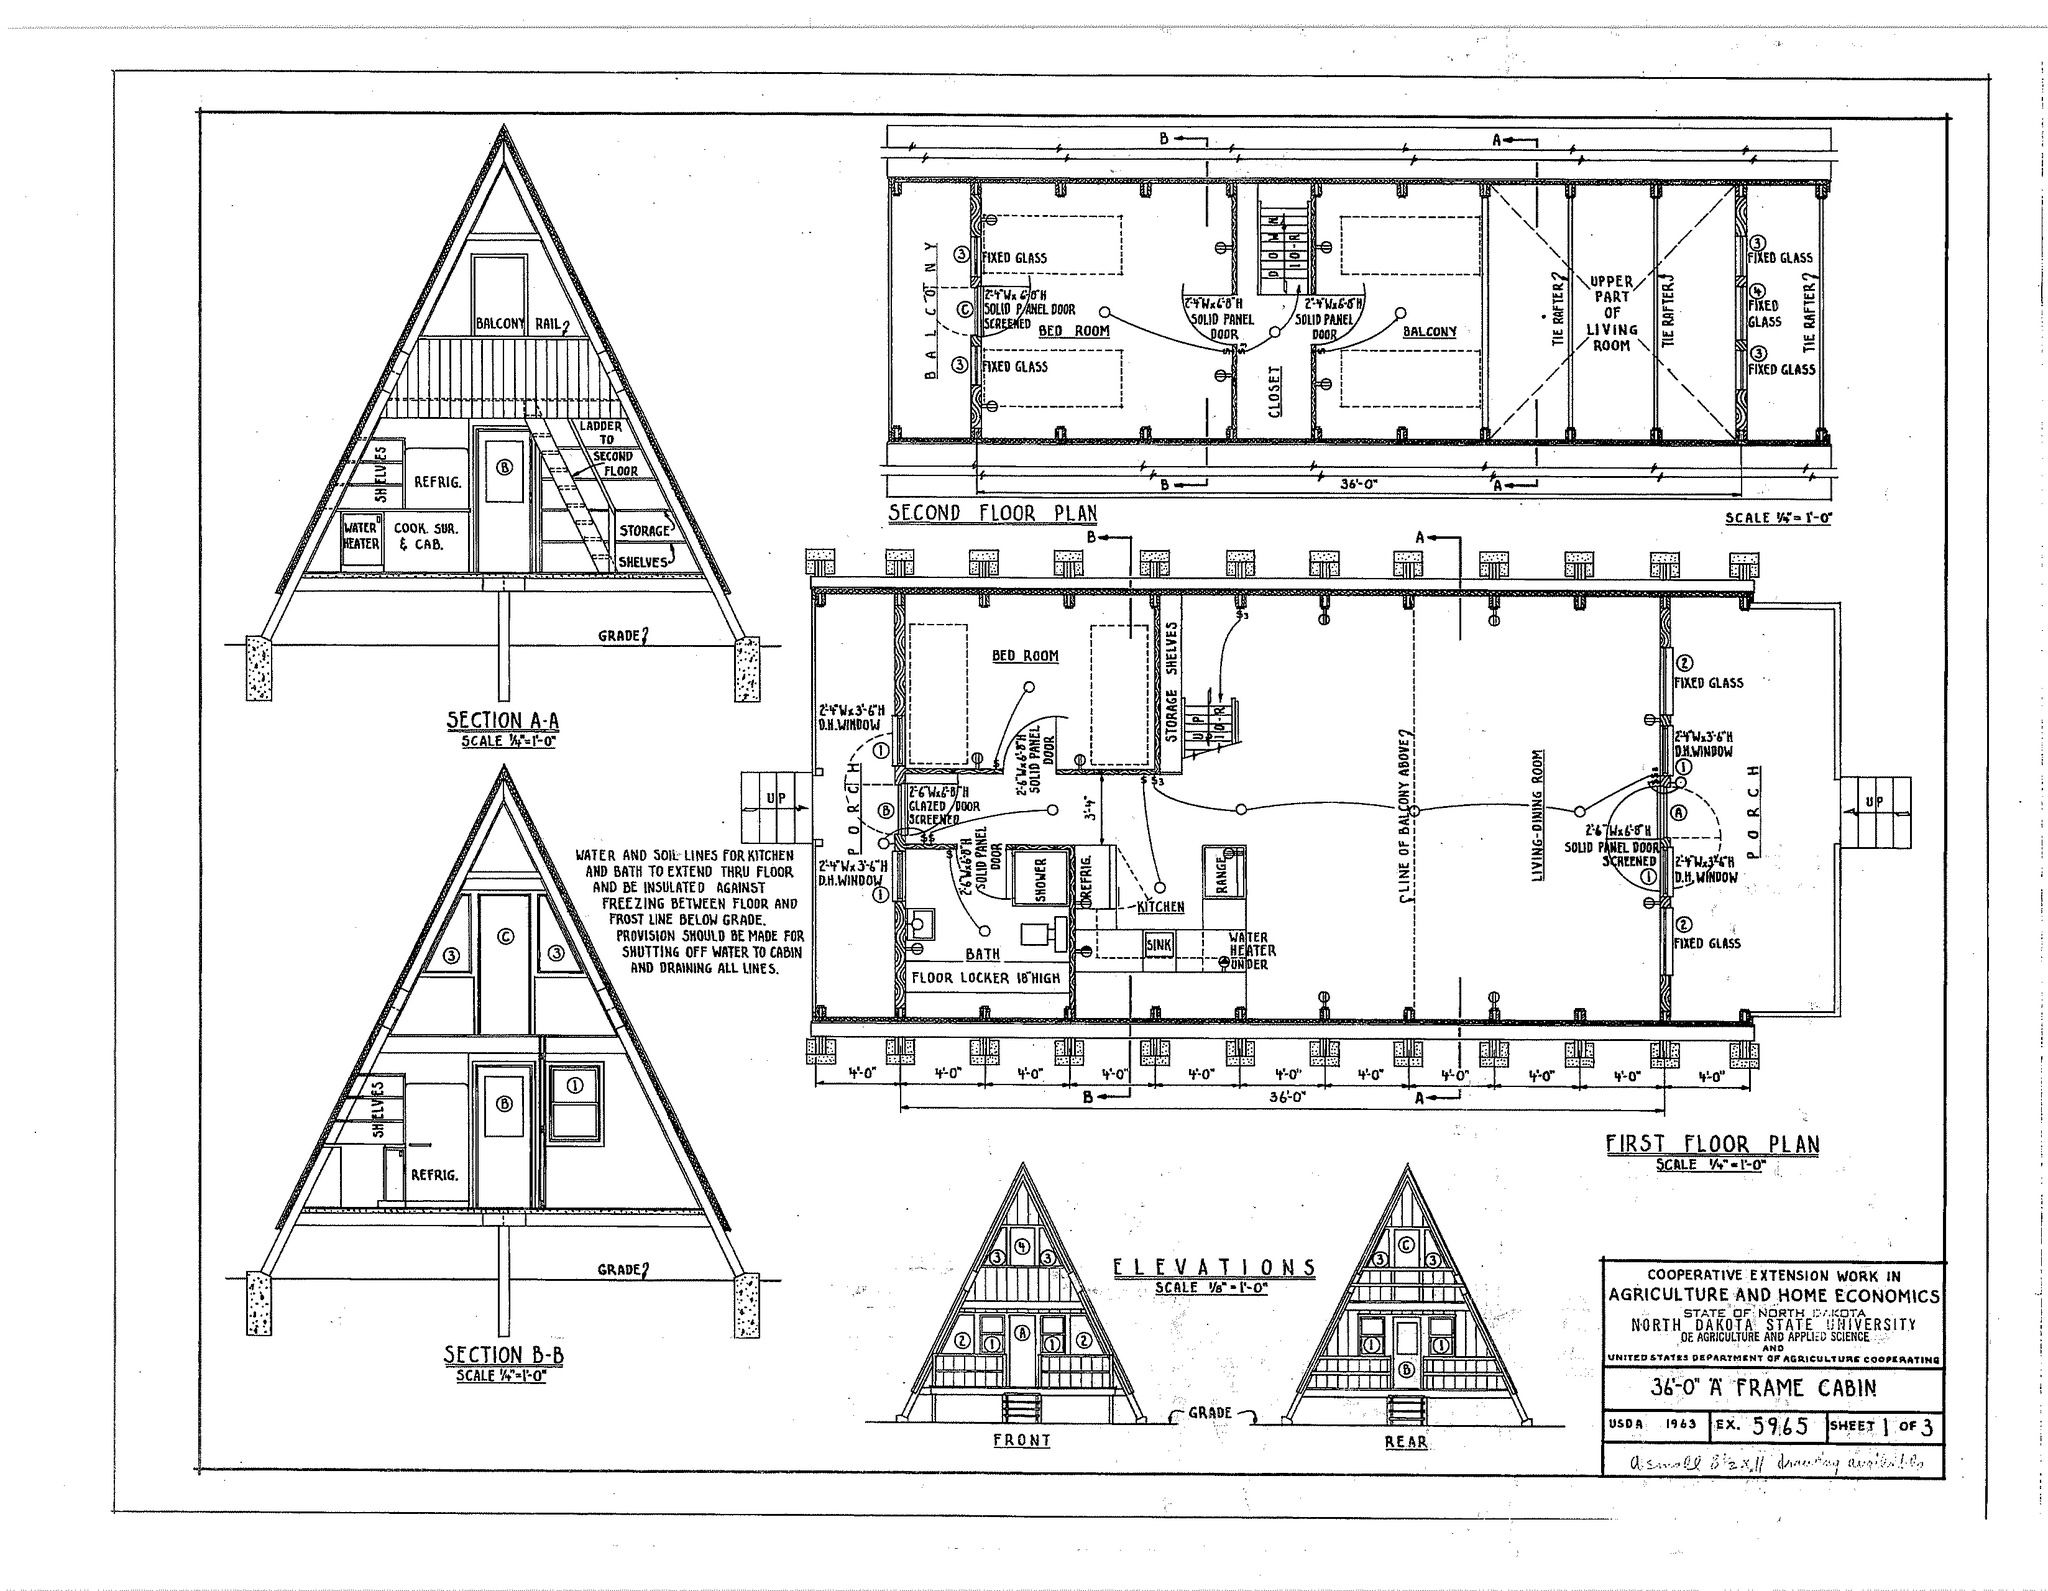 a frame house plans free   Дома   Pinterest   House, Cabin and Lake ...